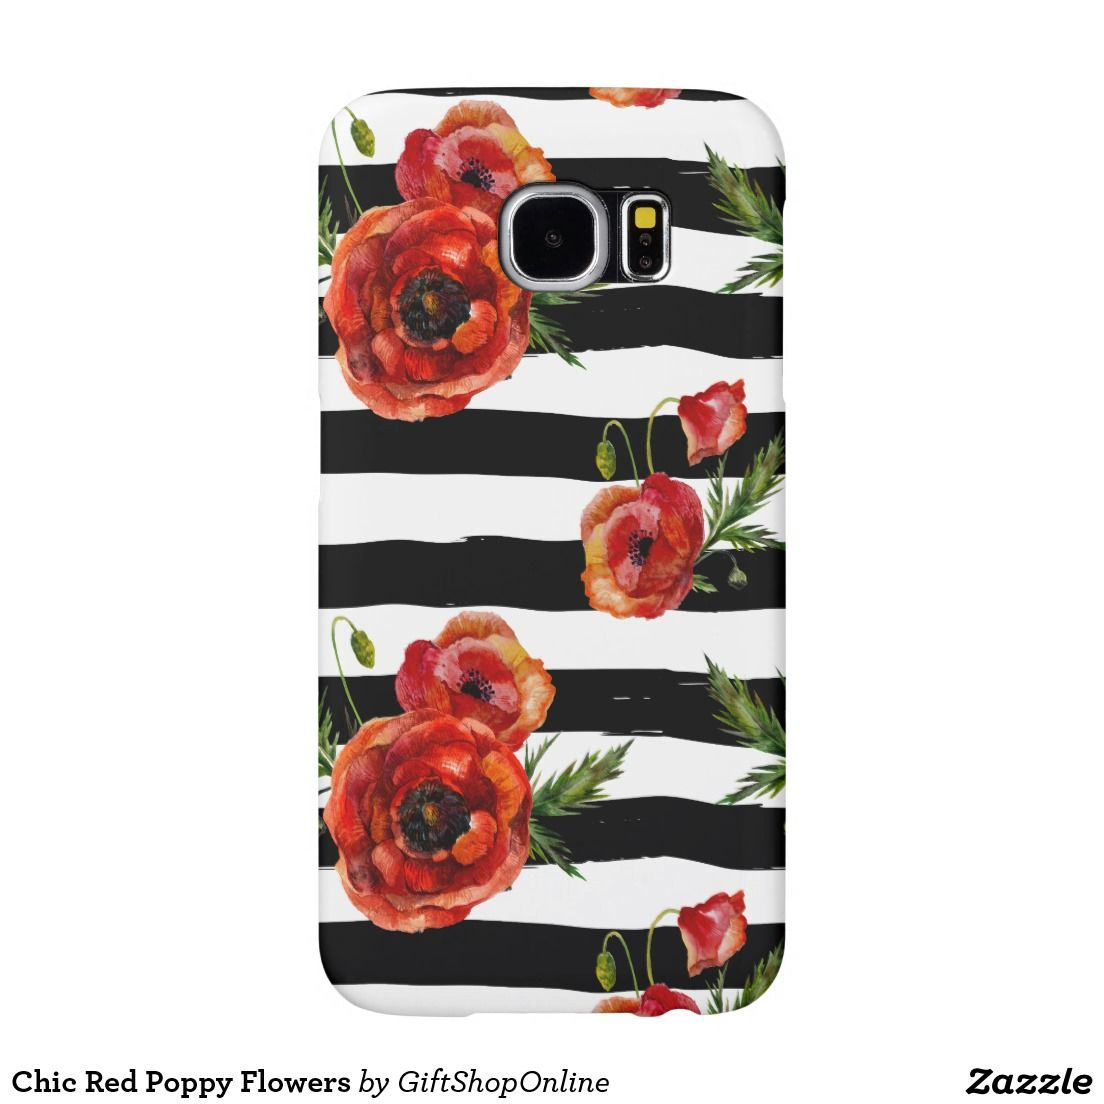 Chic red poppy flowers samsung galaxy s6 case poppy flowers chic red poppy flowers samsung galaxy s6 case black friday sale coupon code is blackfrisave red poppiesflowersblack and whitestripespoppy flower floral mightylinksfo